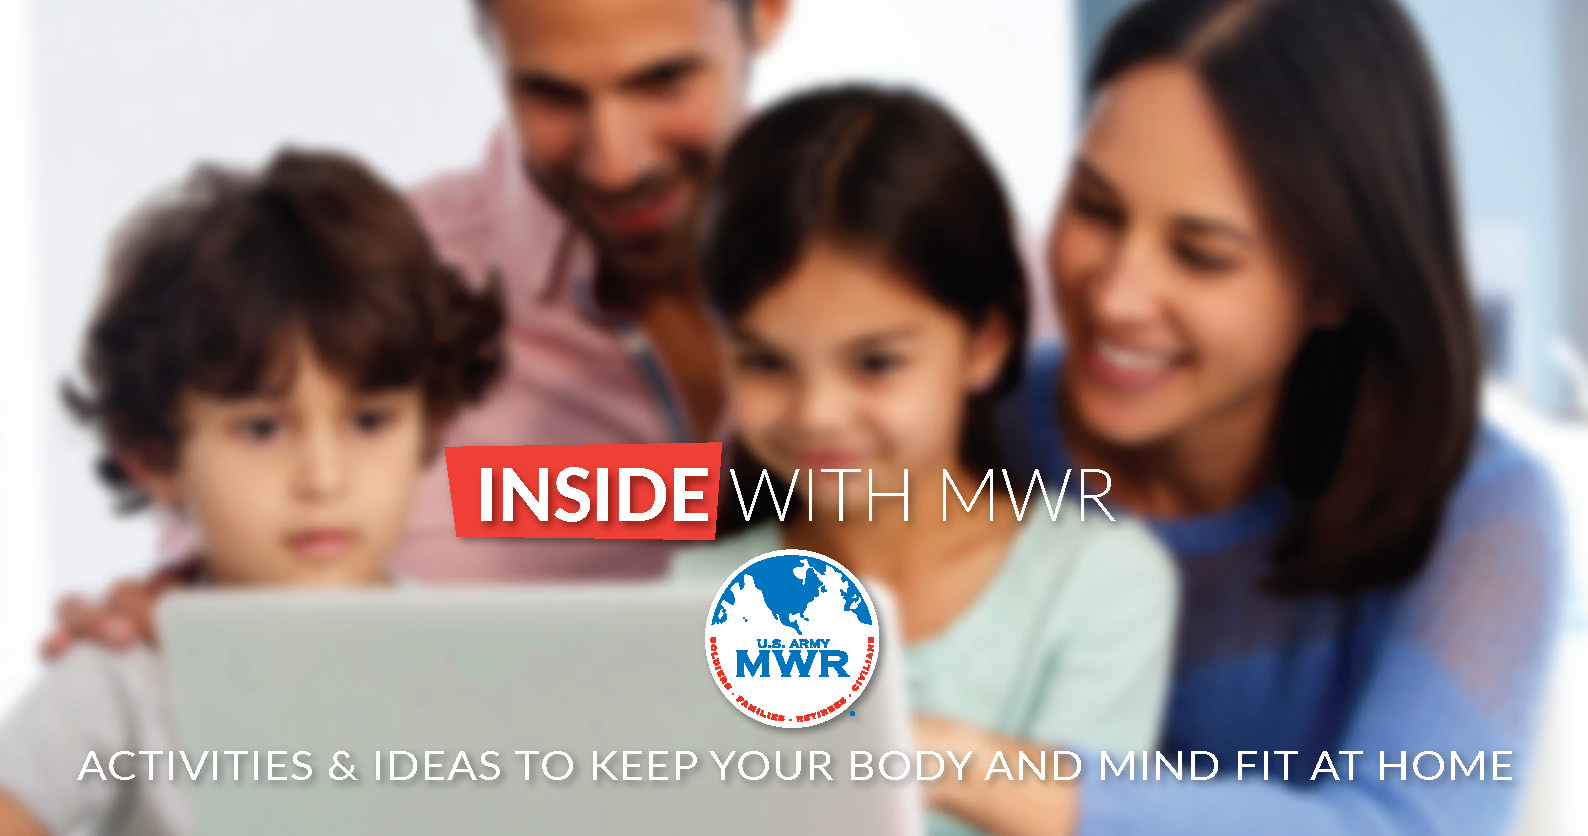 Inside with MWR